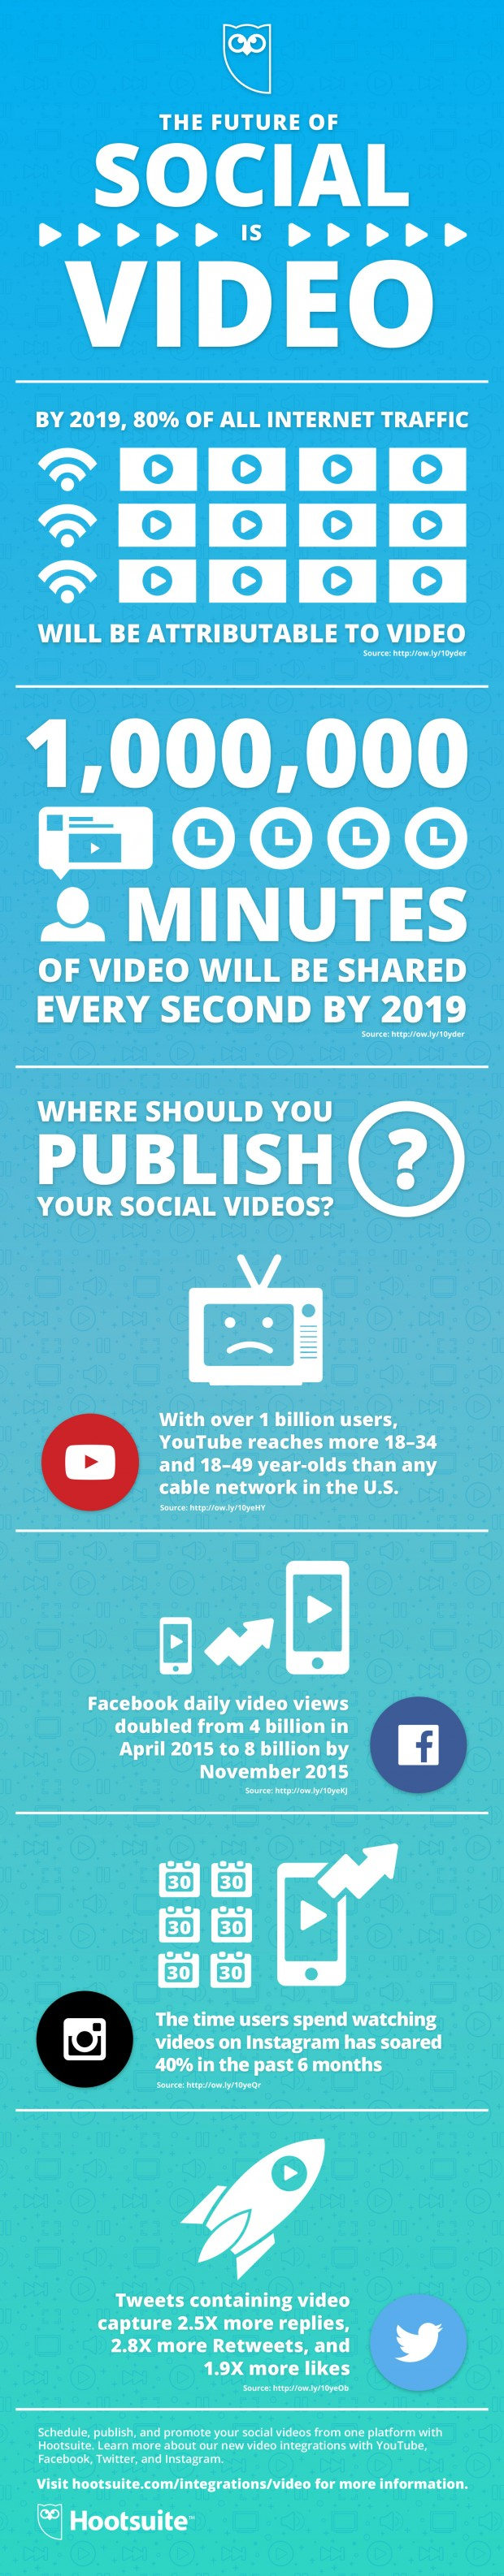 Youtube infographic from Hootsuite